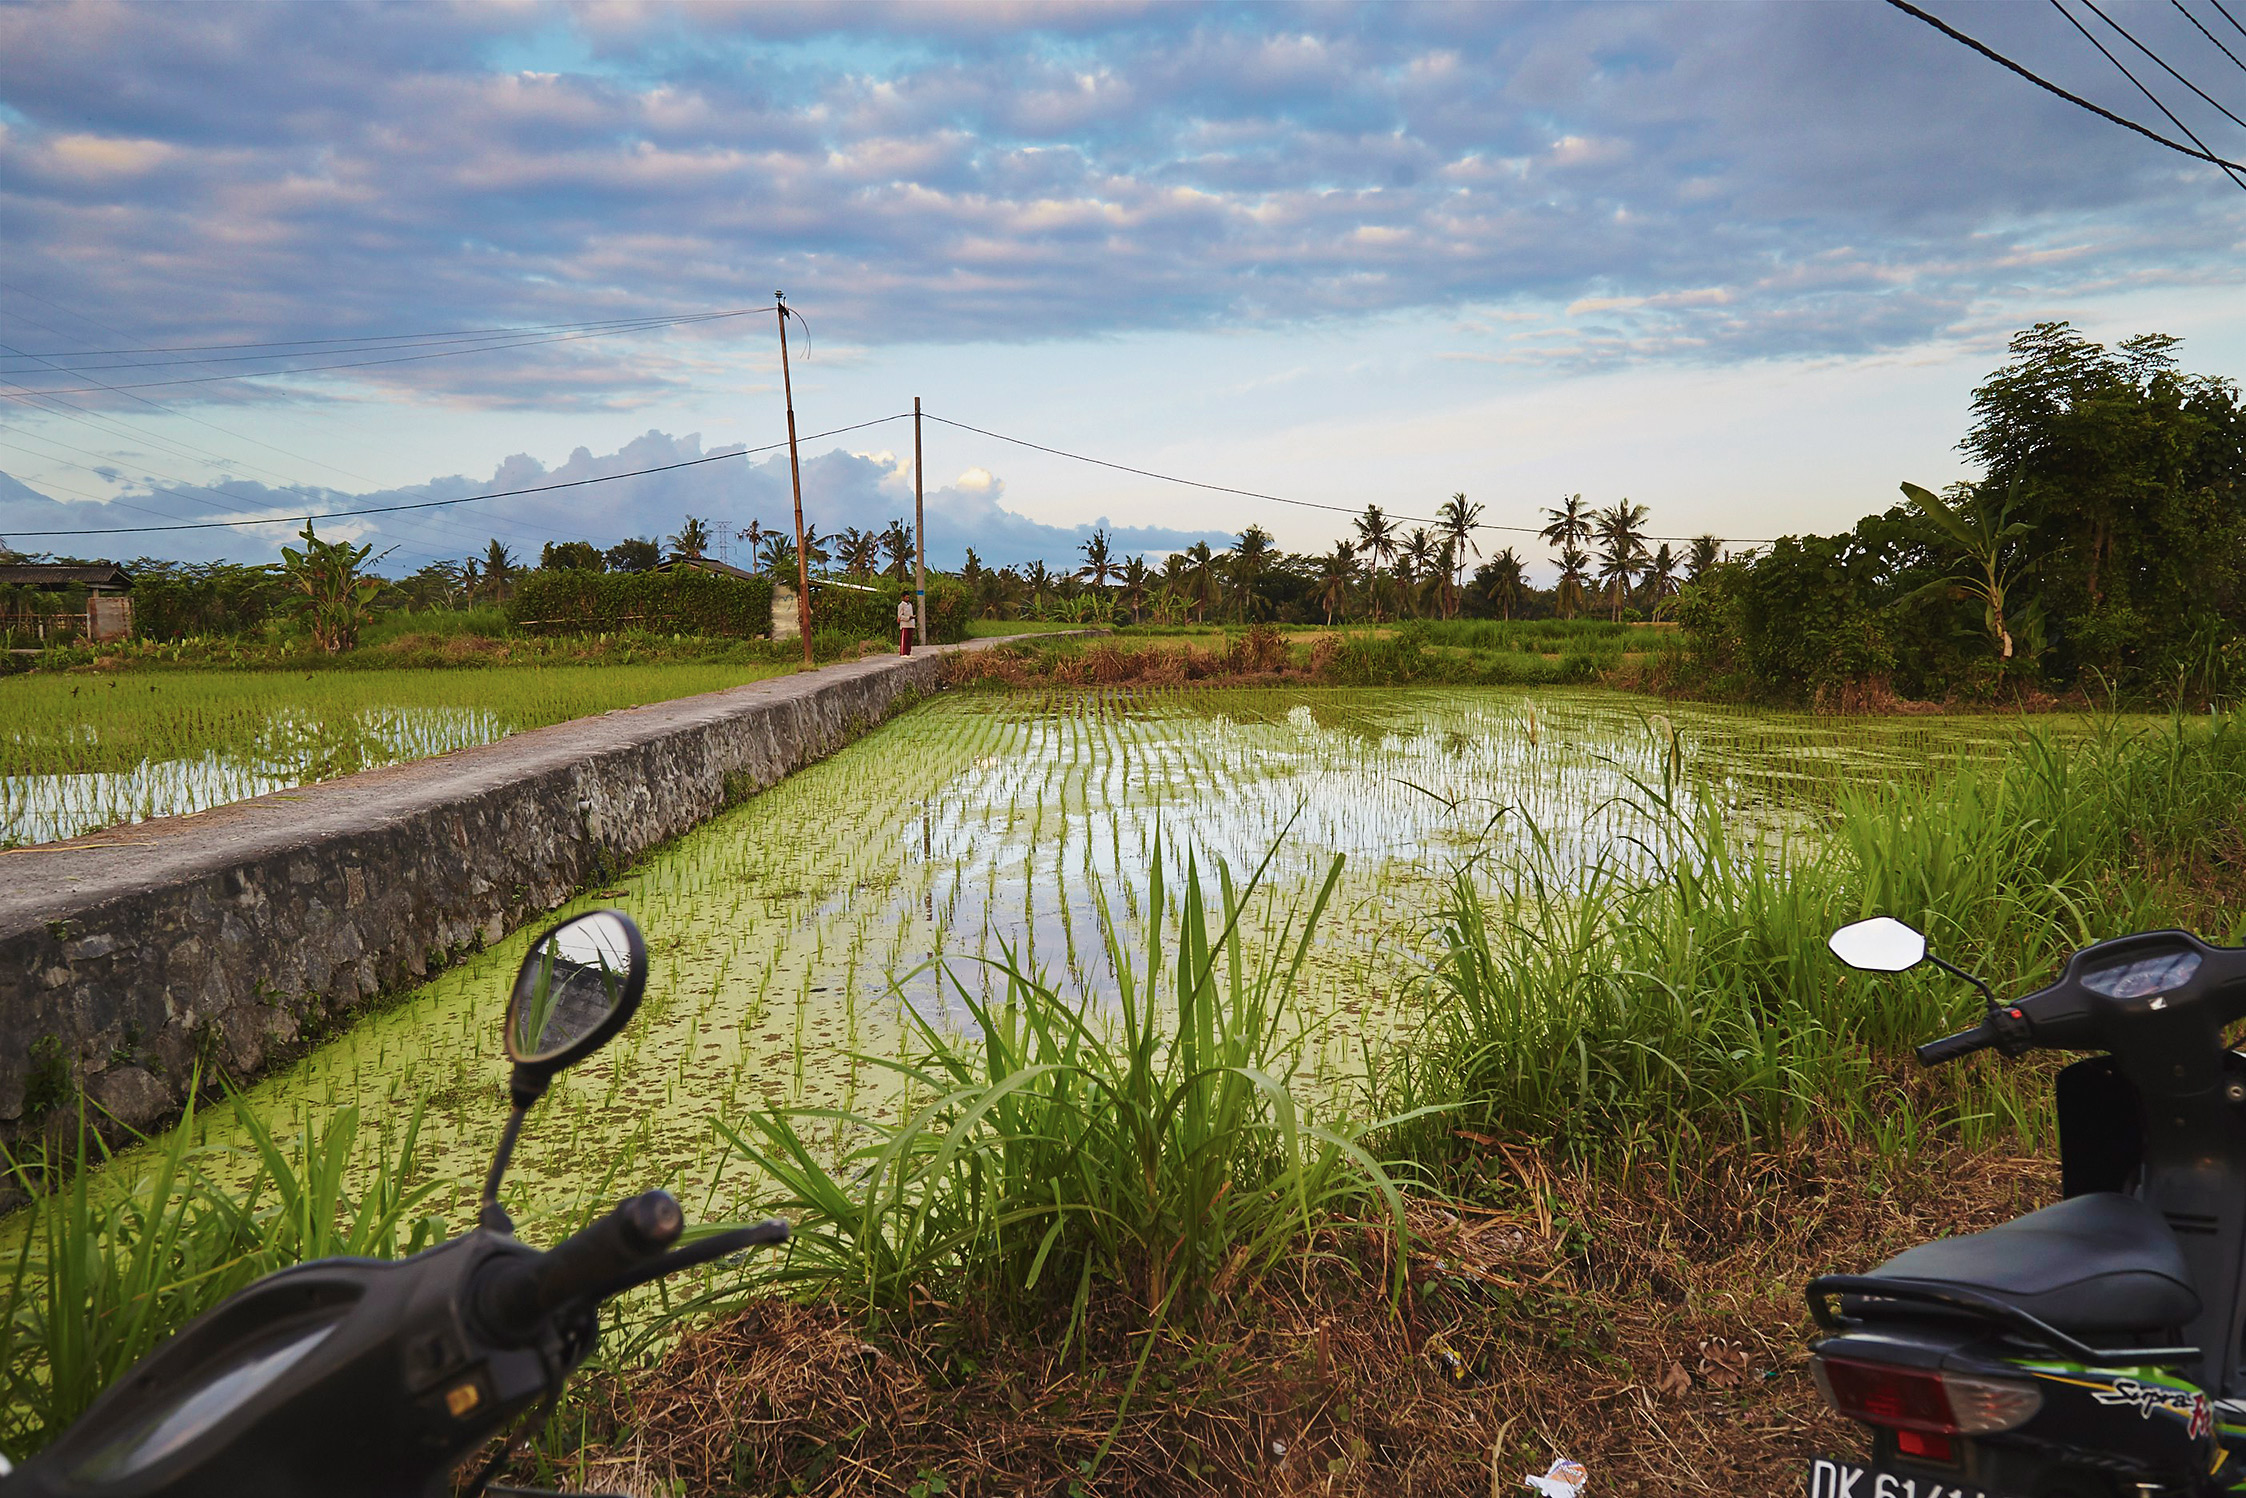 My first look at a Bali rice field